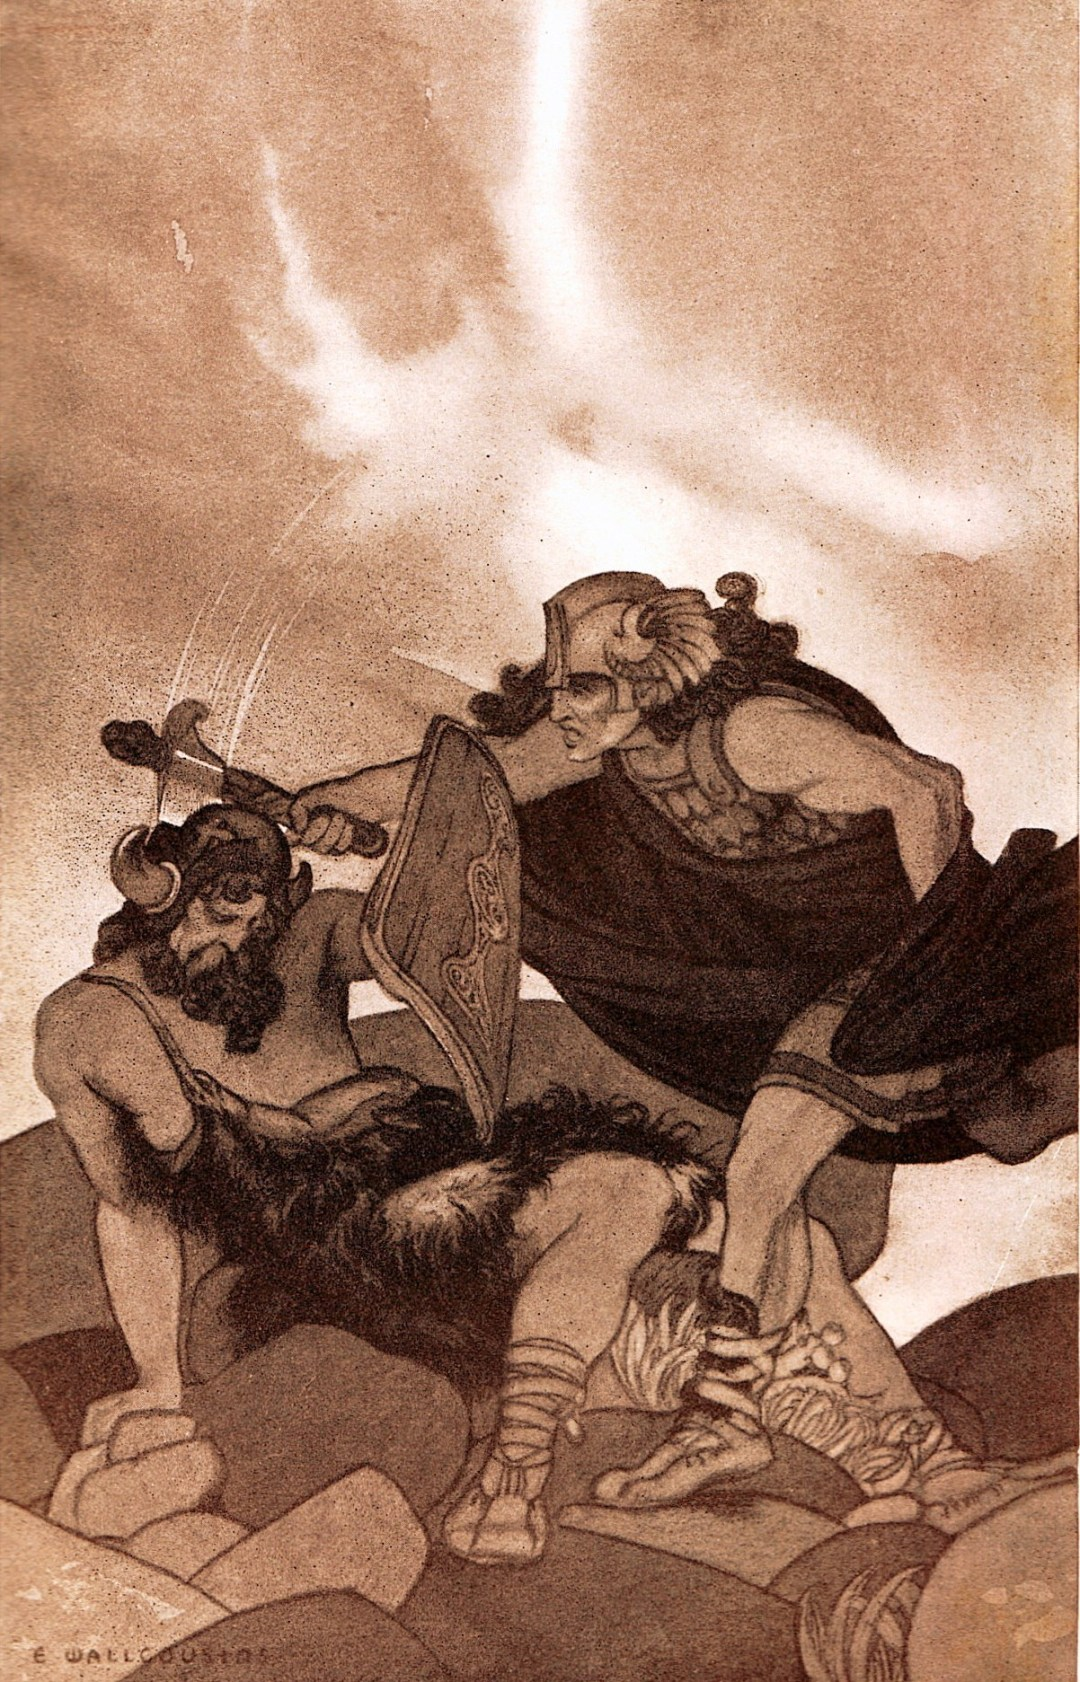 Gwydion kills Pryderi, in a 1905 illustration by Earnest Wallcousins